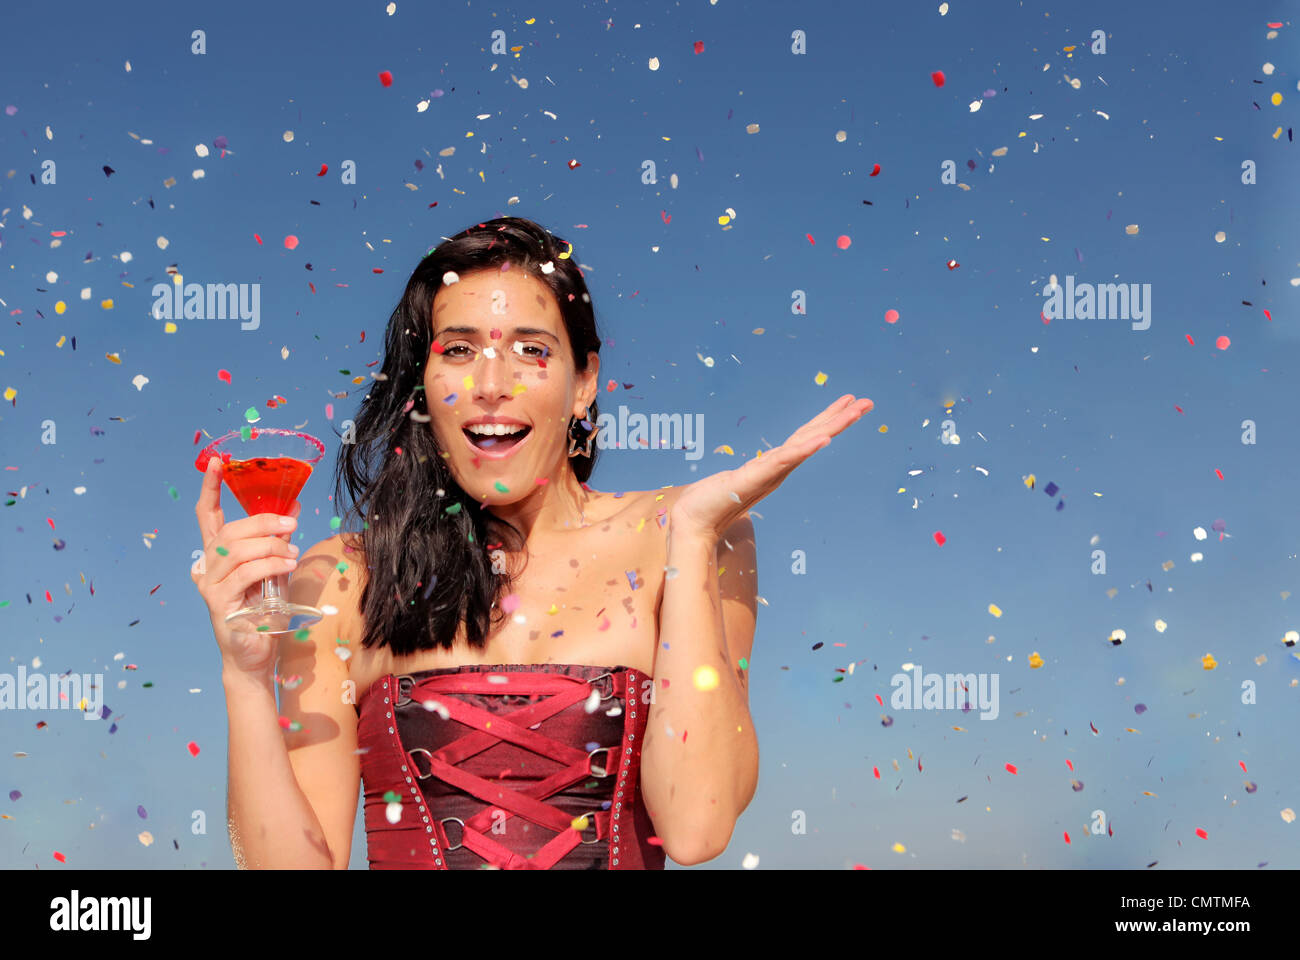 woman celebrating at party drinking cocktail - Stock Image